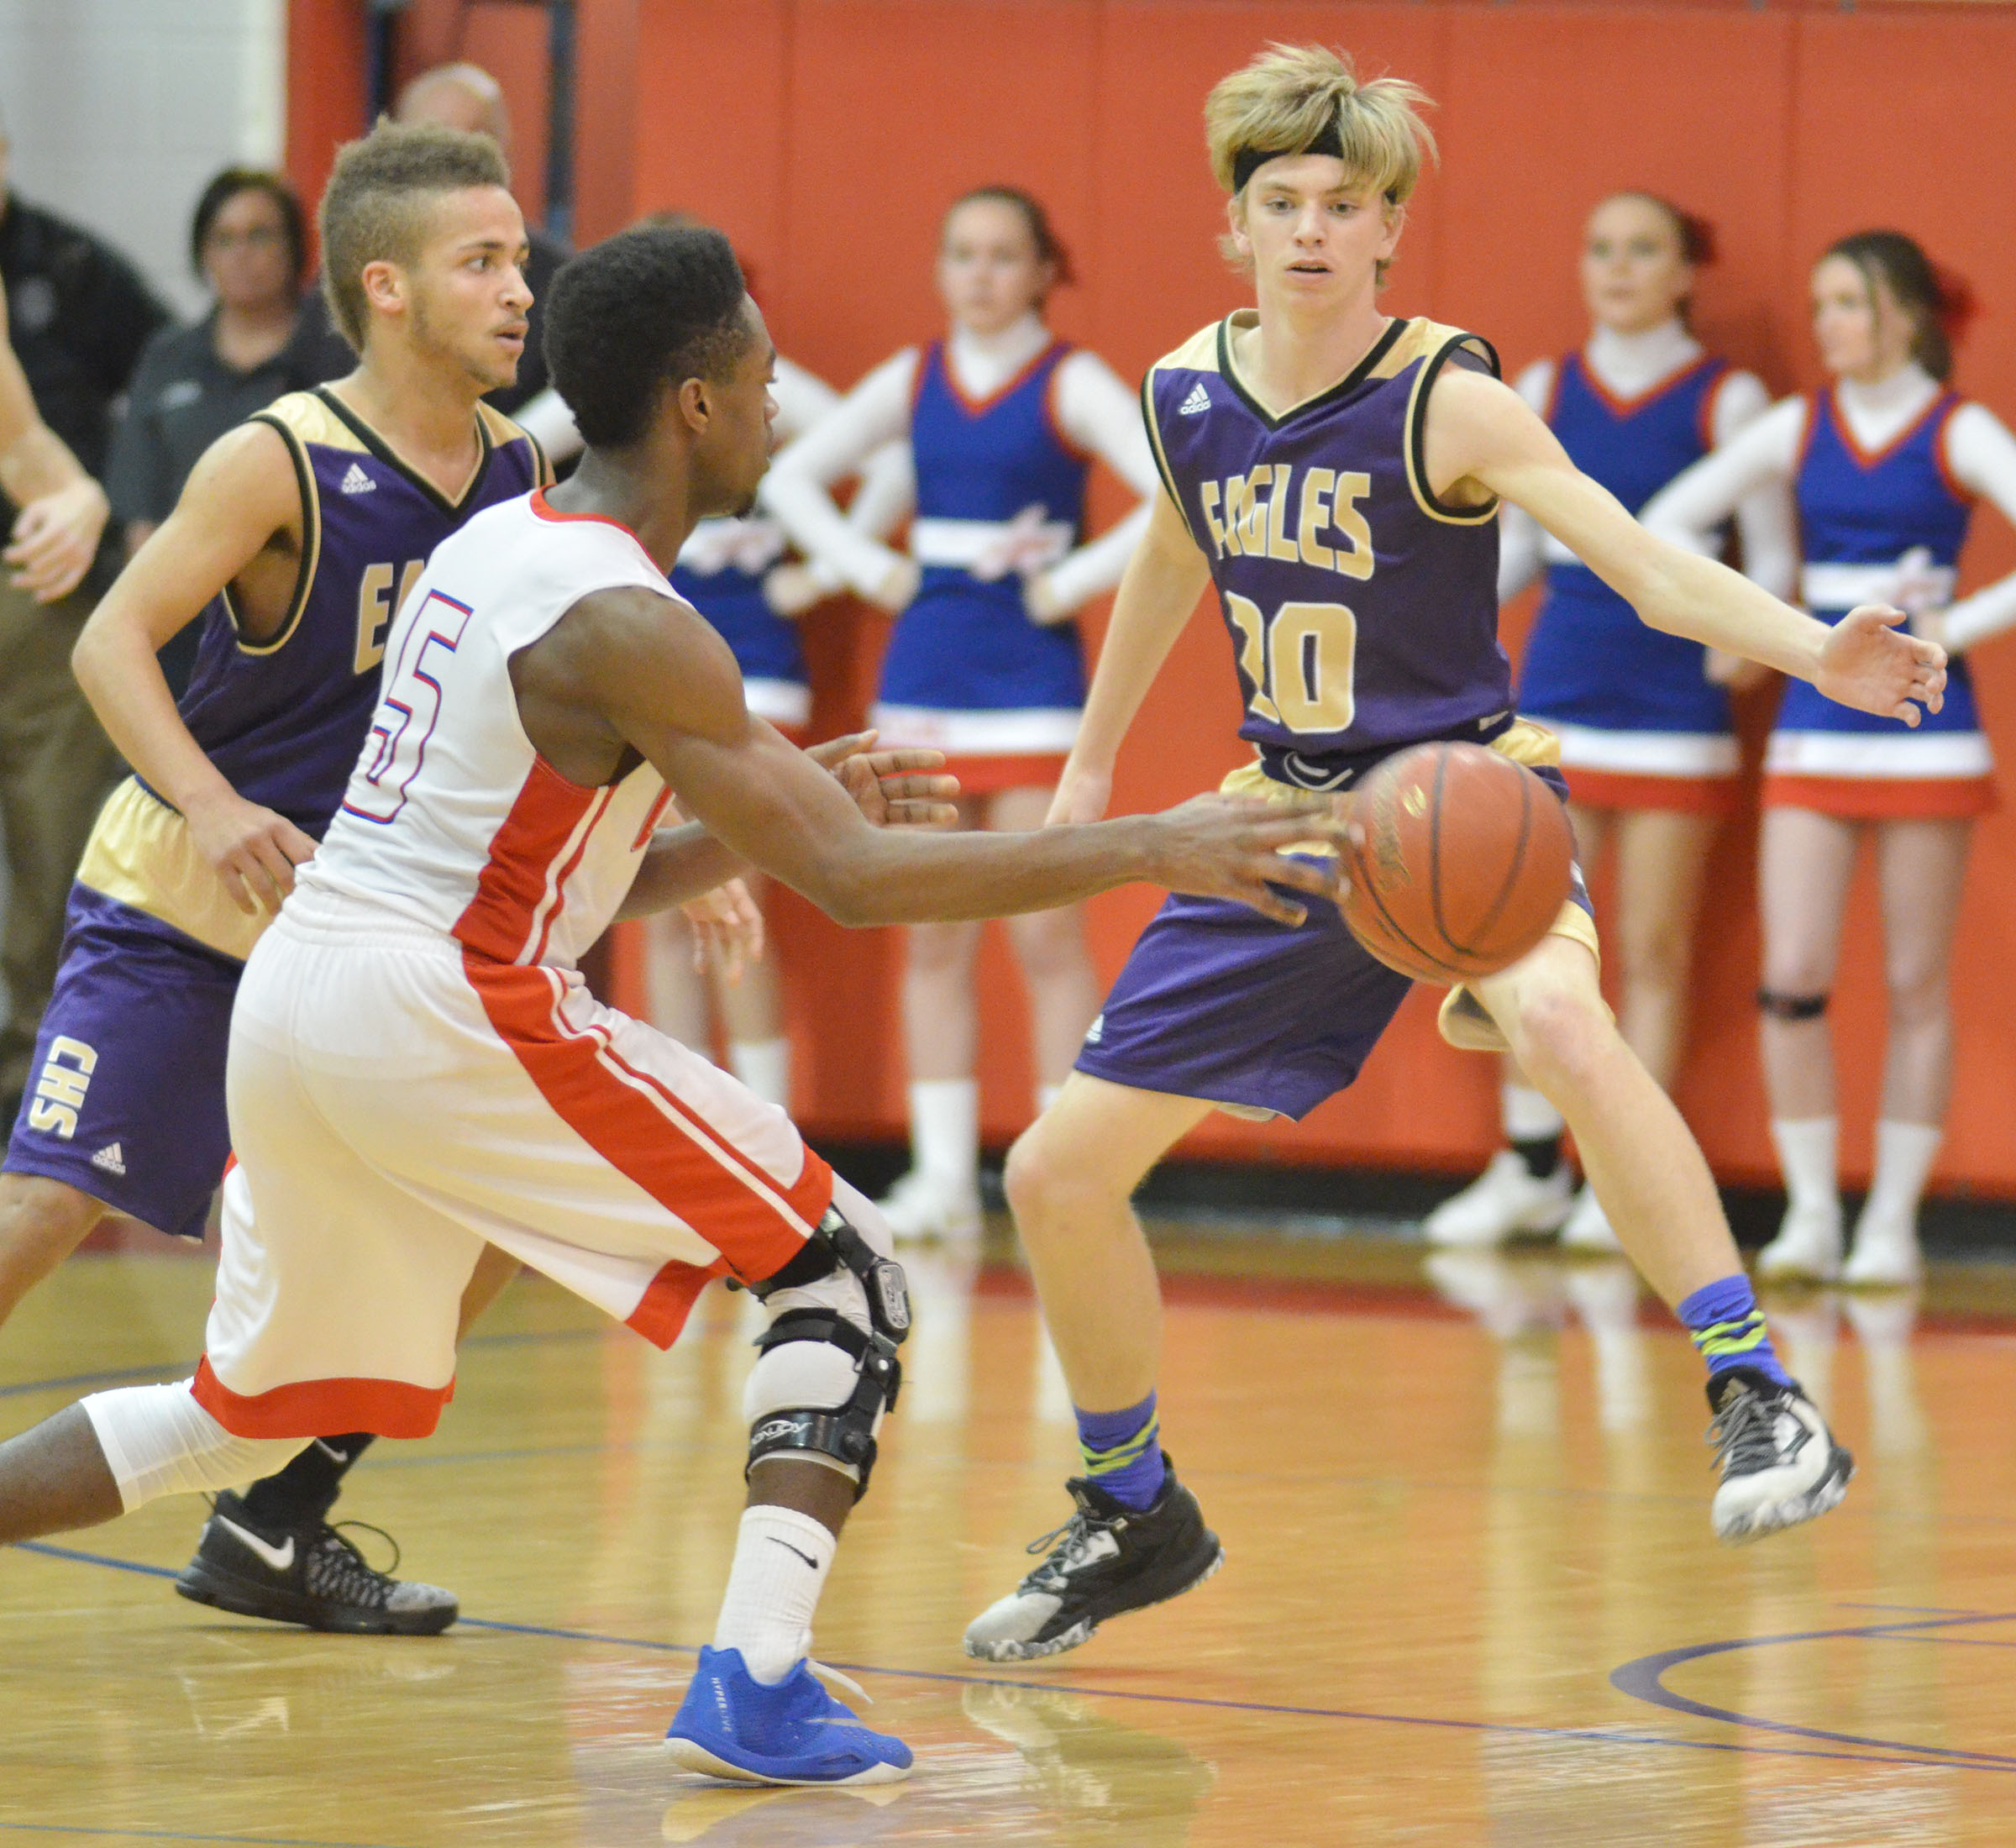 CHS junior Ethan Lay, at left, and Campbellsville Middle School eighth-grader Arren Hash play defense.